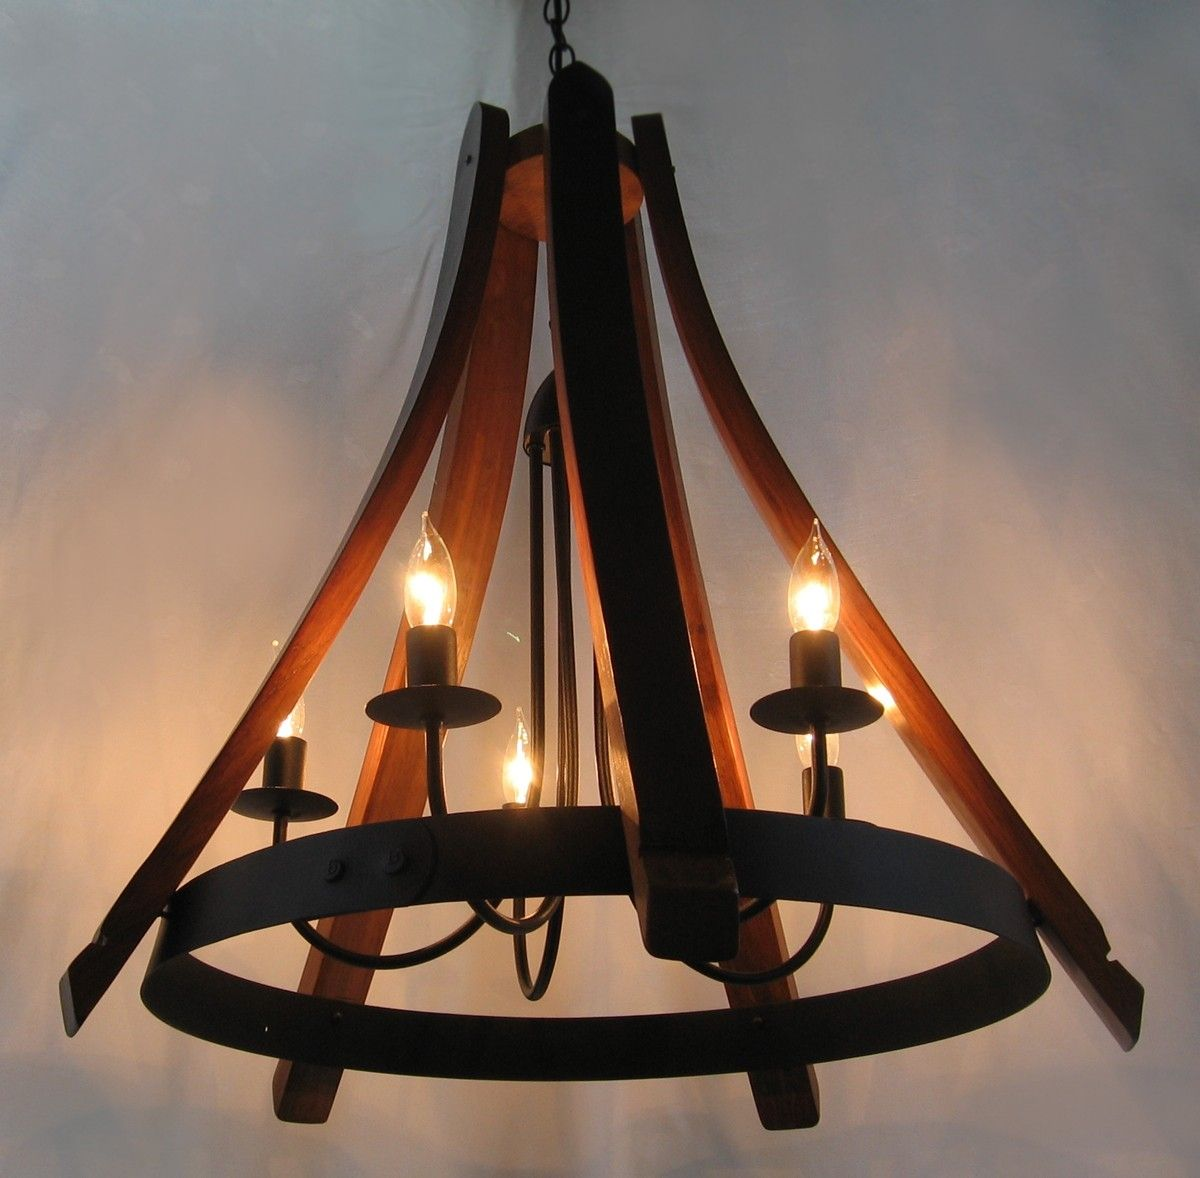 Buy a hand made cervantes wine barrel chandelier recycled oak staves and hoop pendant ceiling - Chandelier ceiling lamp ...